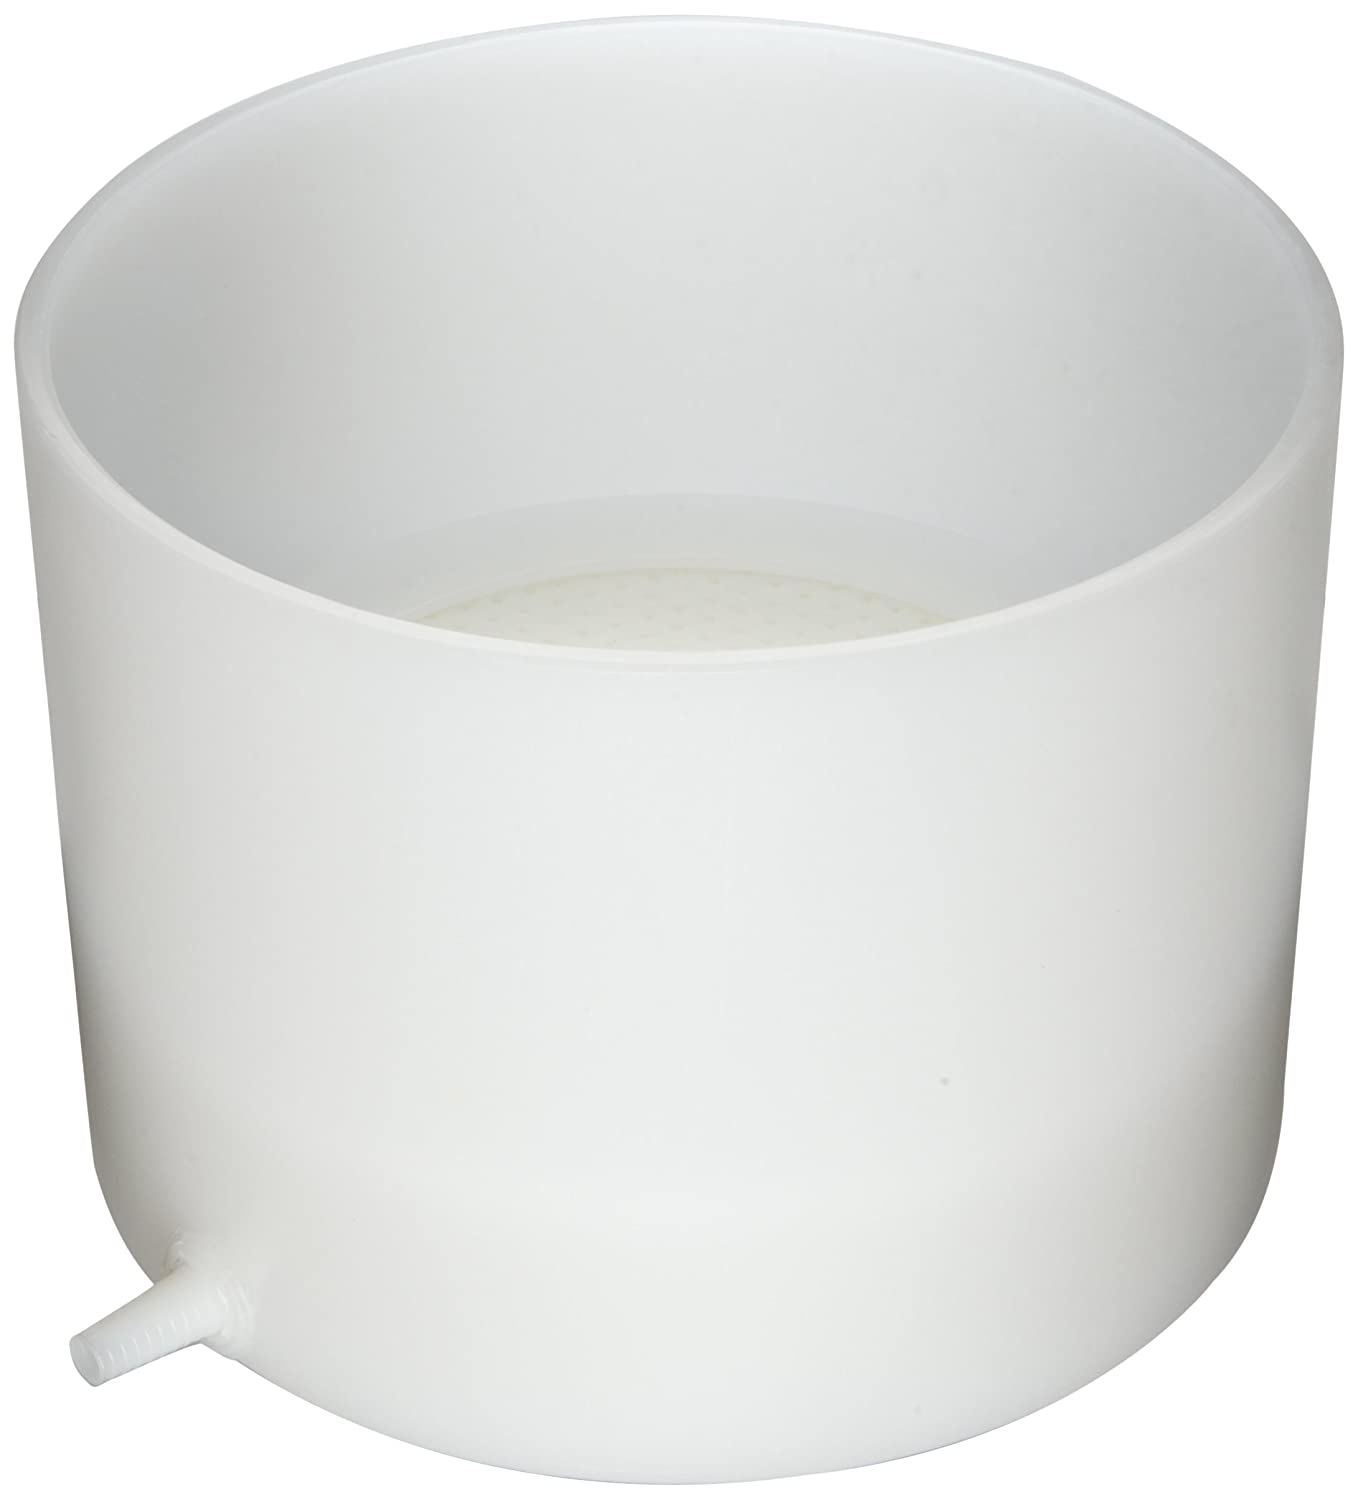 Bel Art Polyethylene Buchner Table Top Funnel with Medium Porosity Removable Plate; 18 in. I.D 11.5 in. Height H14626 3518